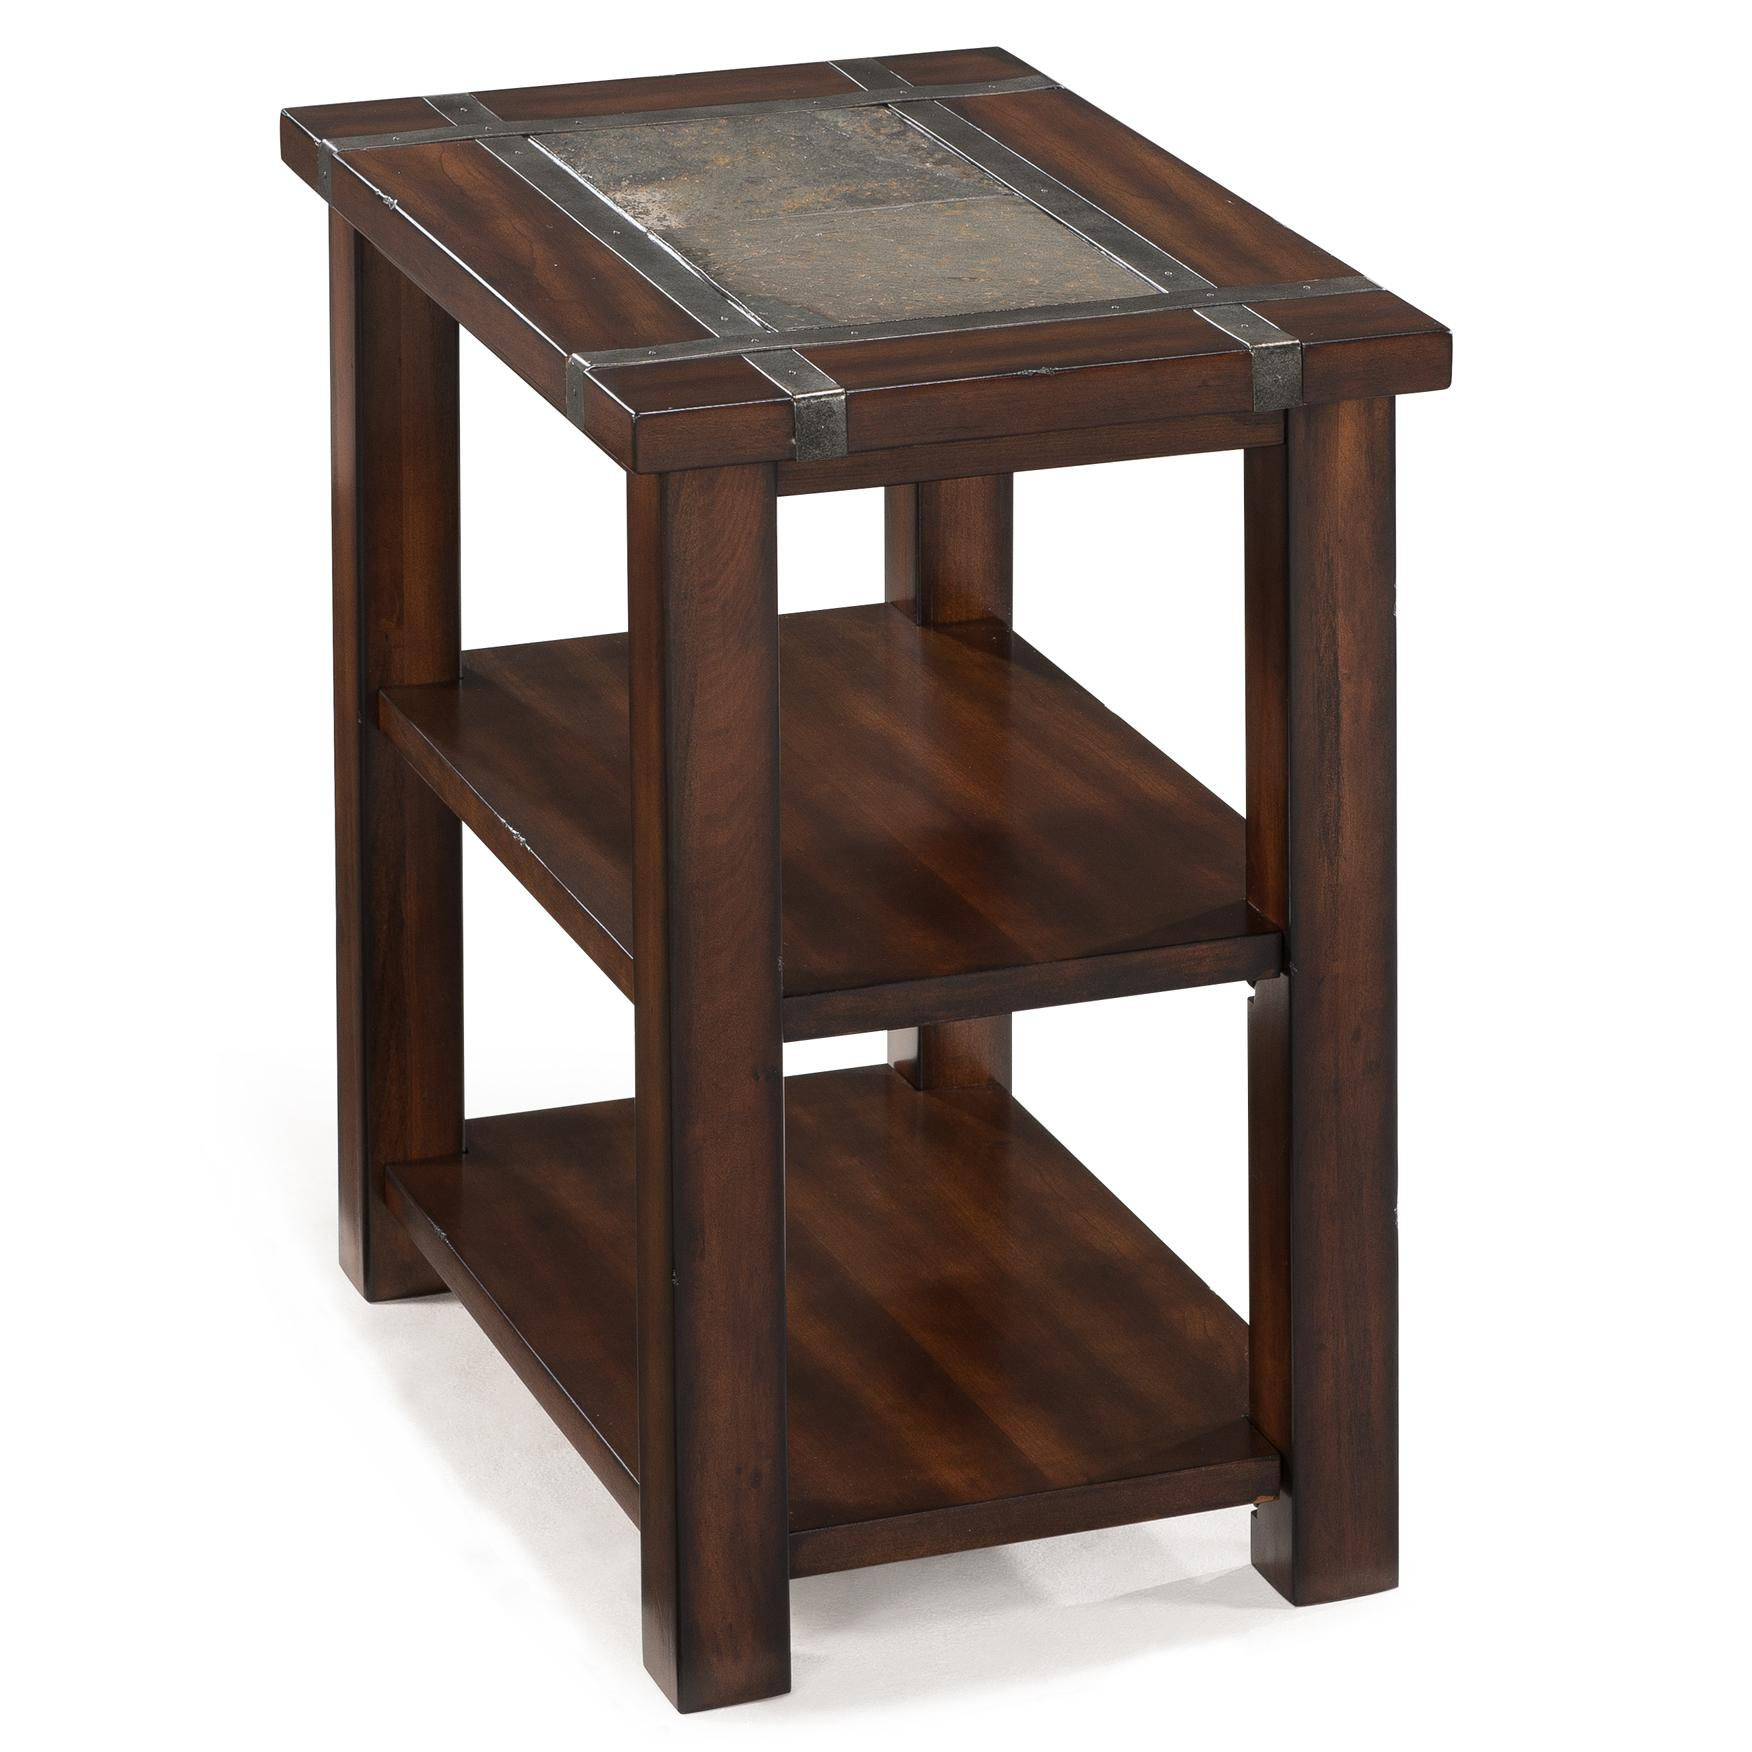 Magnussen Home Roanoke Rectangular Chairside End Table - Item Number: T2615-10